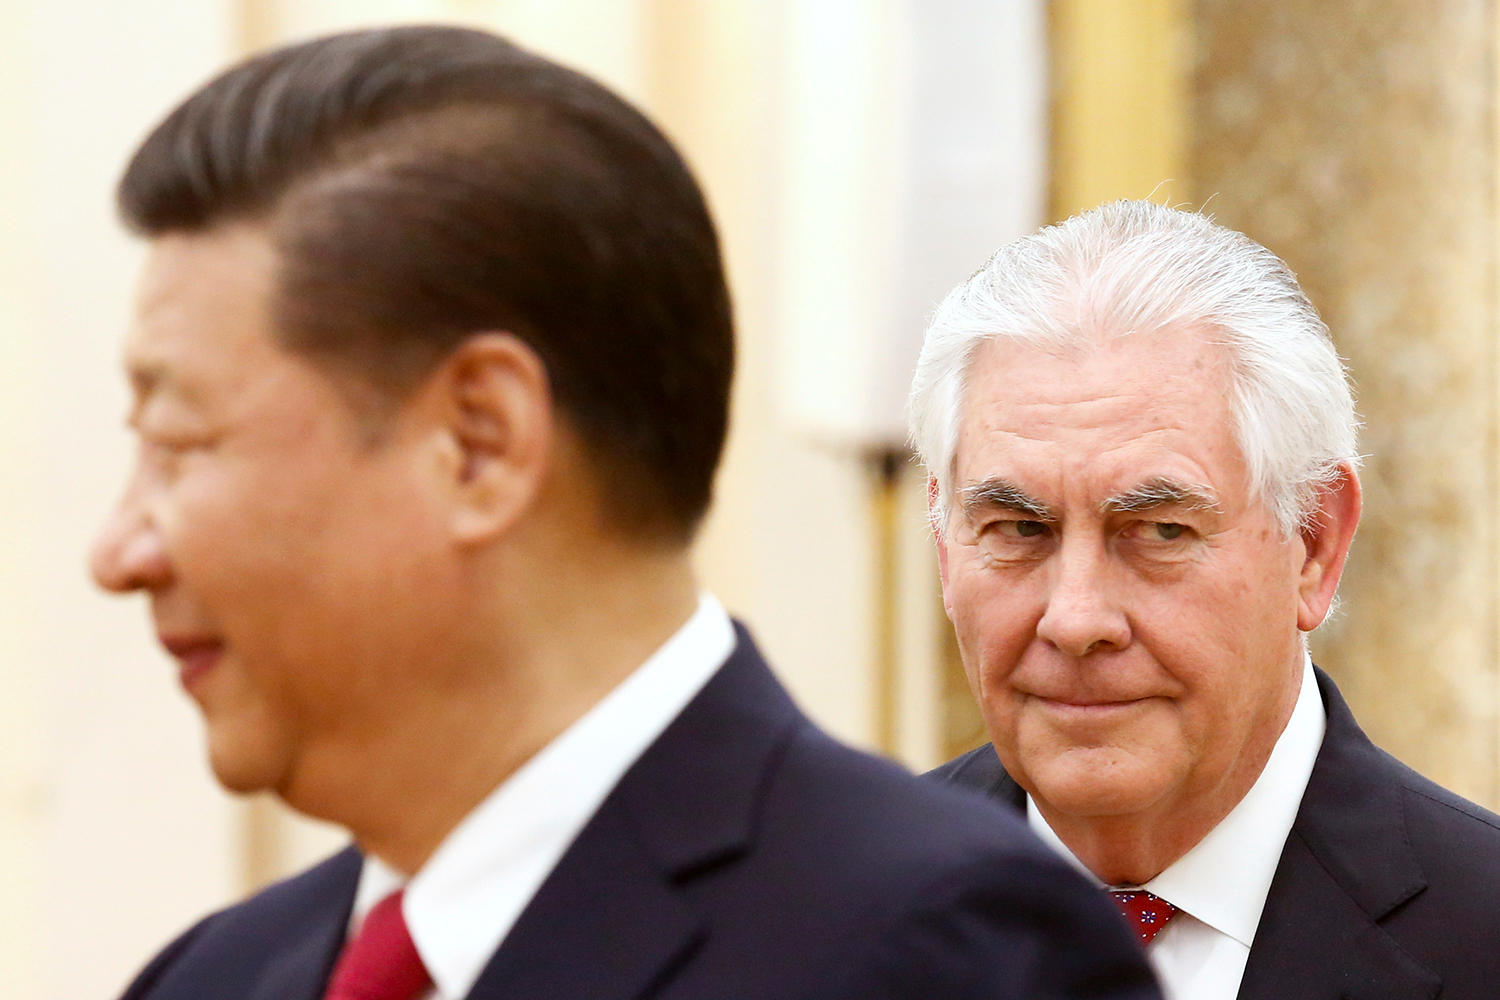 BEIJING 2017-03-19 China's President Xi Jinping meets U.S. State of Secretary, Rex Tillerson at the Great Hall of the People in Beijing, China, March 19, 2017. REUTERS/Thomas Peter TPX IMAGES OF THE DAY Photo: / REUTERS / TT / kod 72000